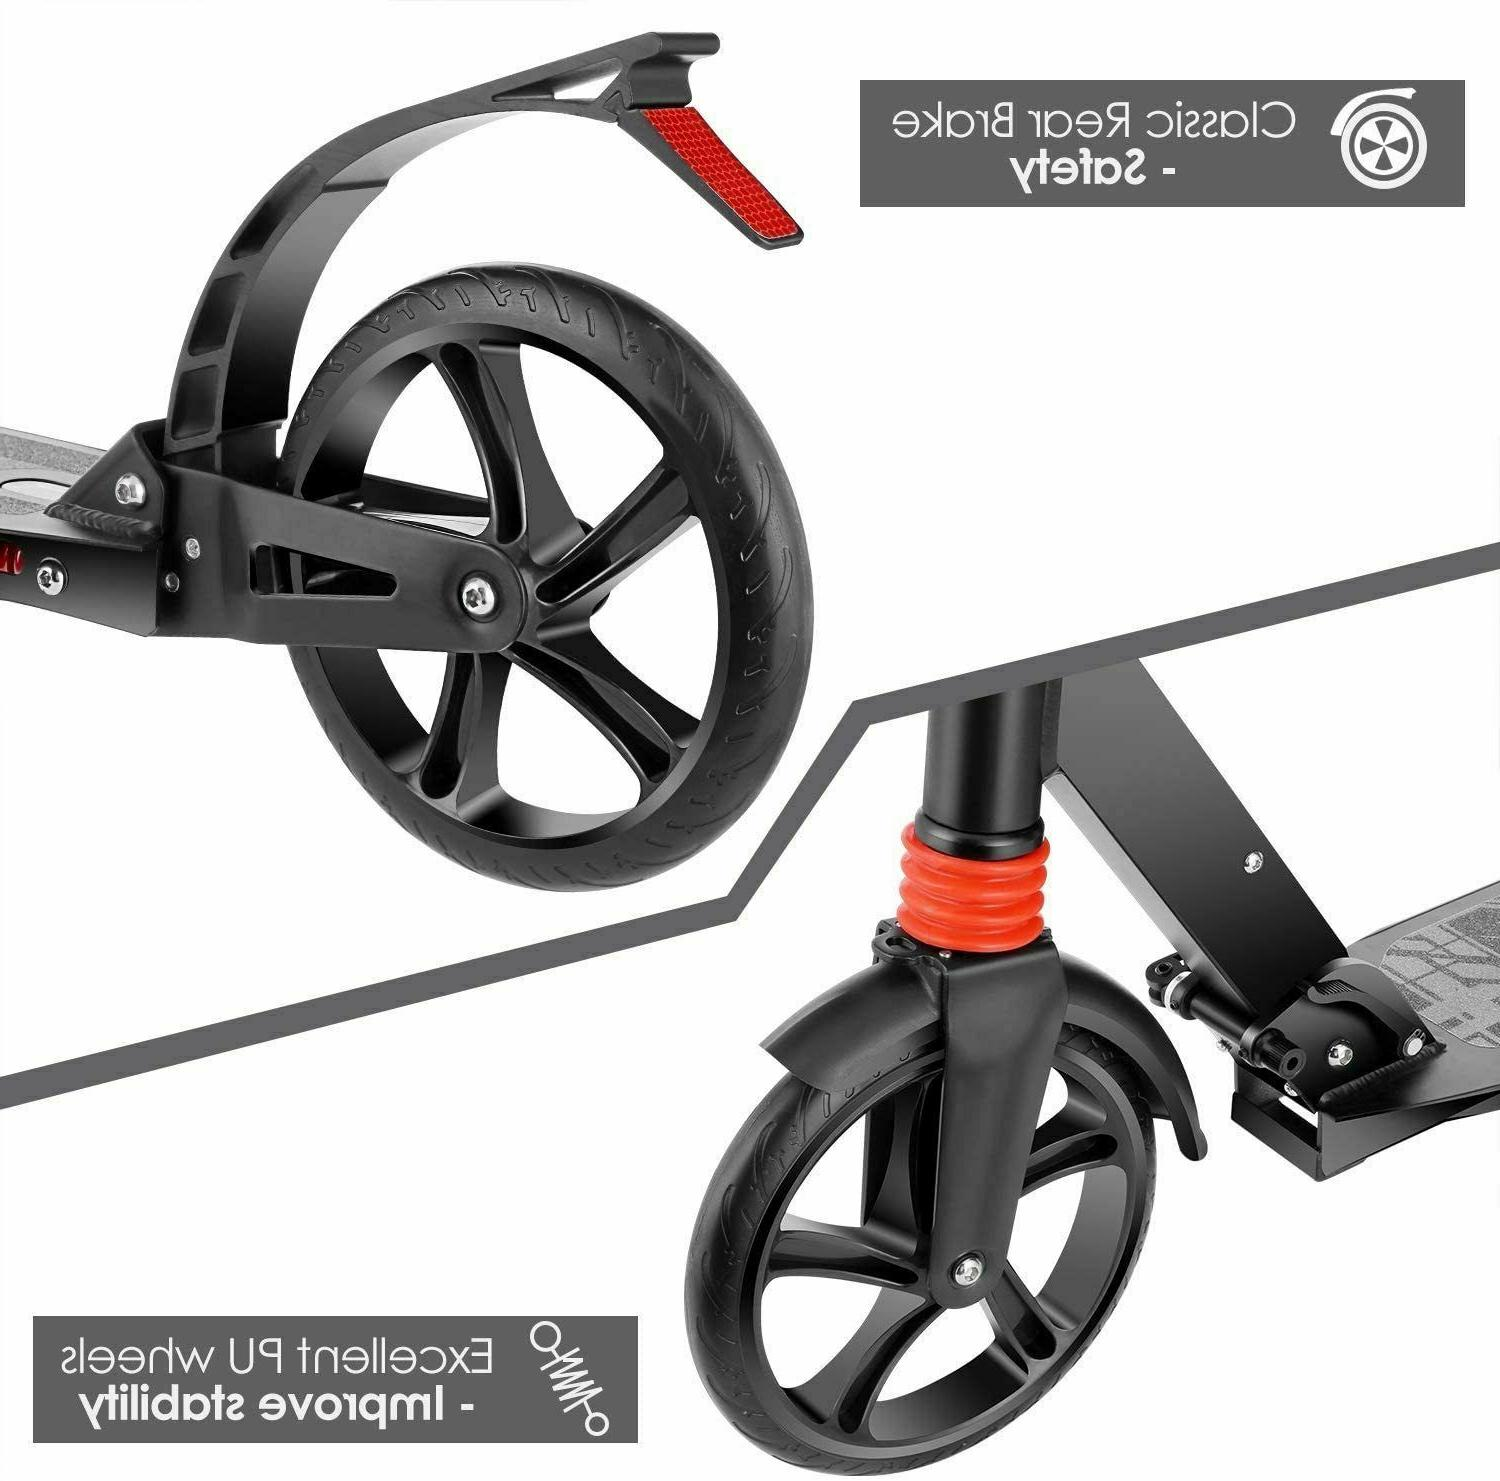 Folding Scooter 3 Level Outdoor Ride for Kids